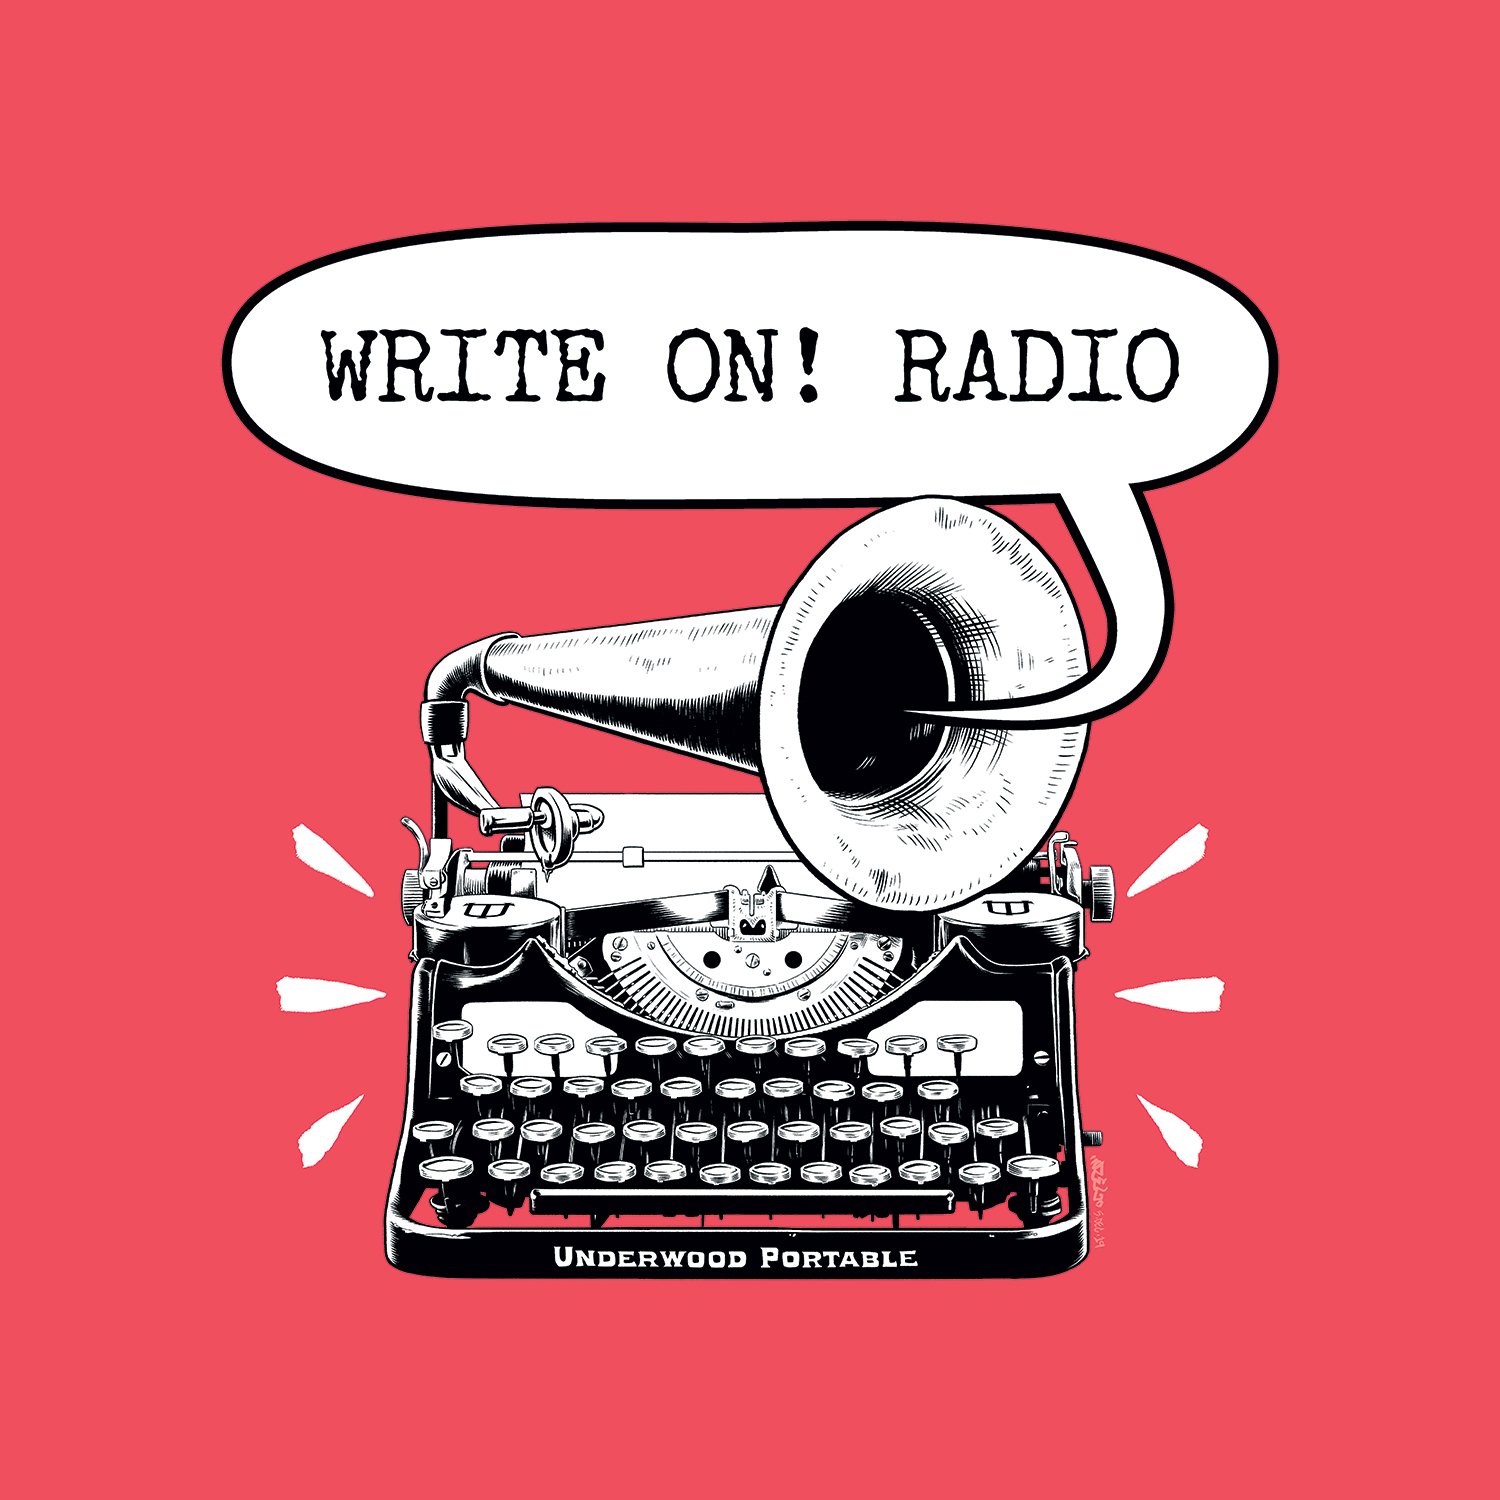 Write-on! Radio – The Novelist Thomas Peacock and Juan Munoz